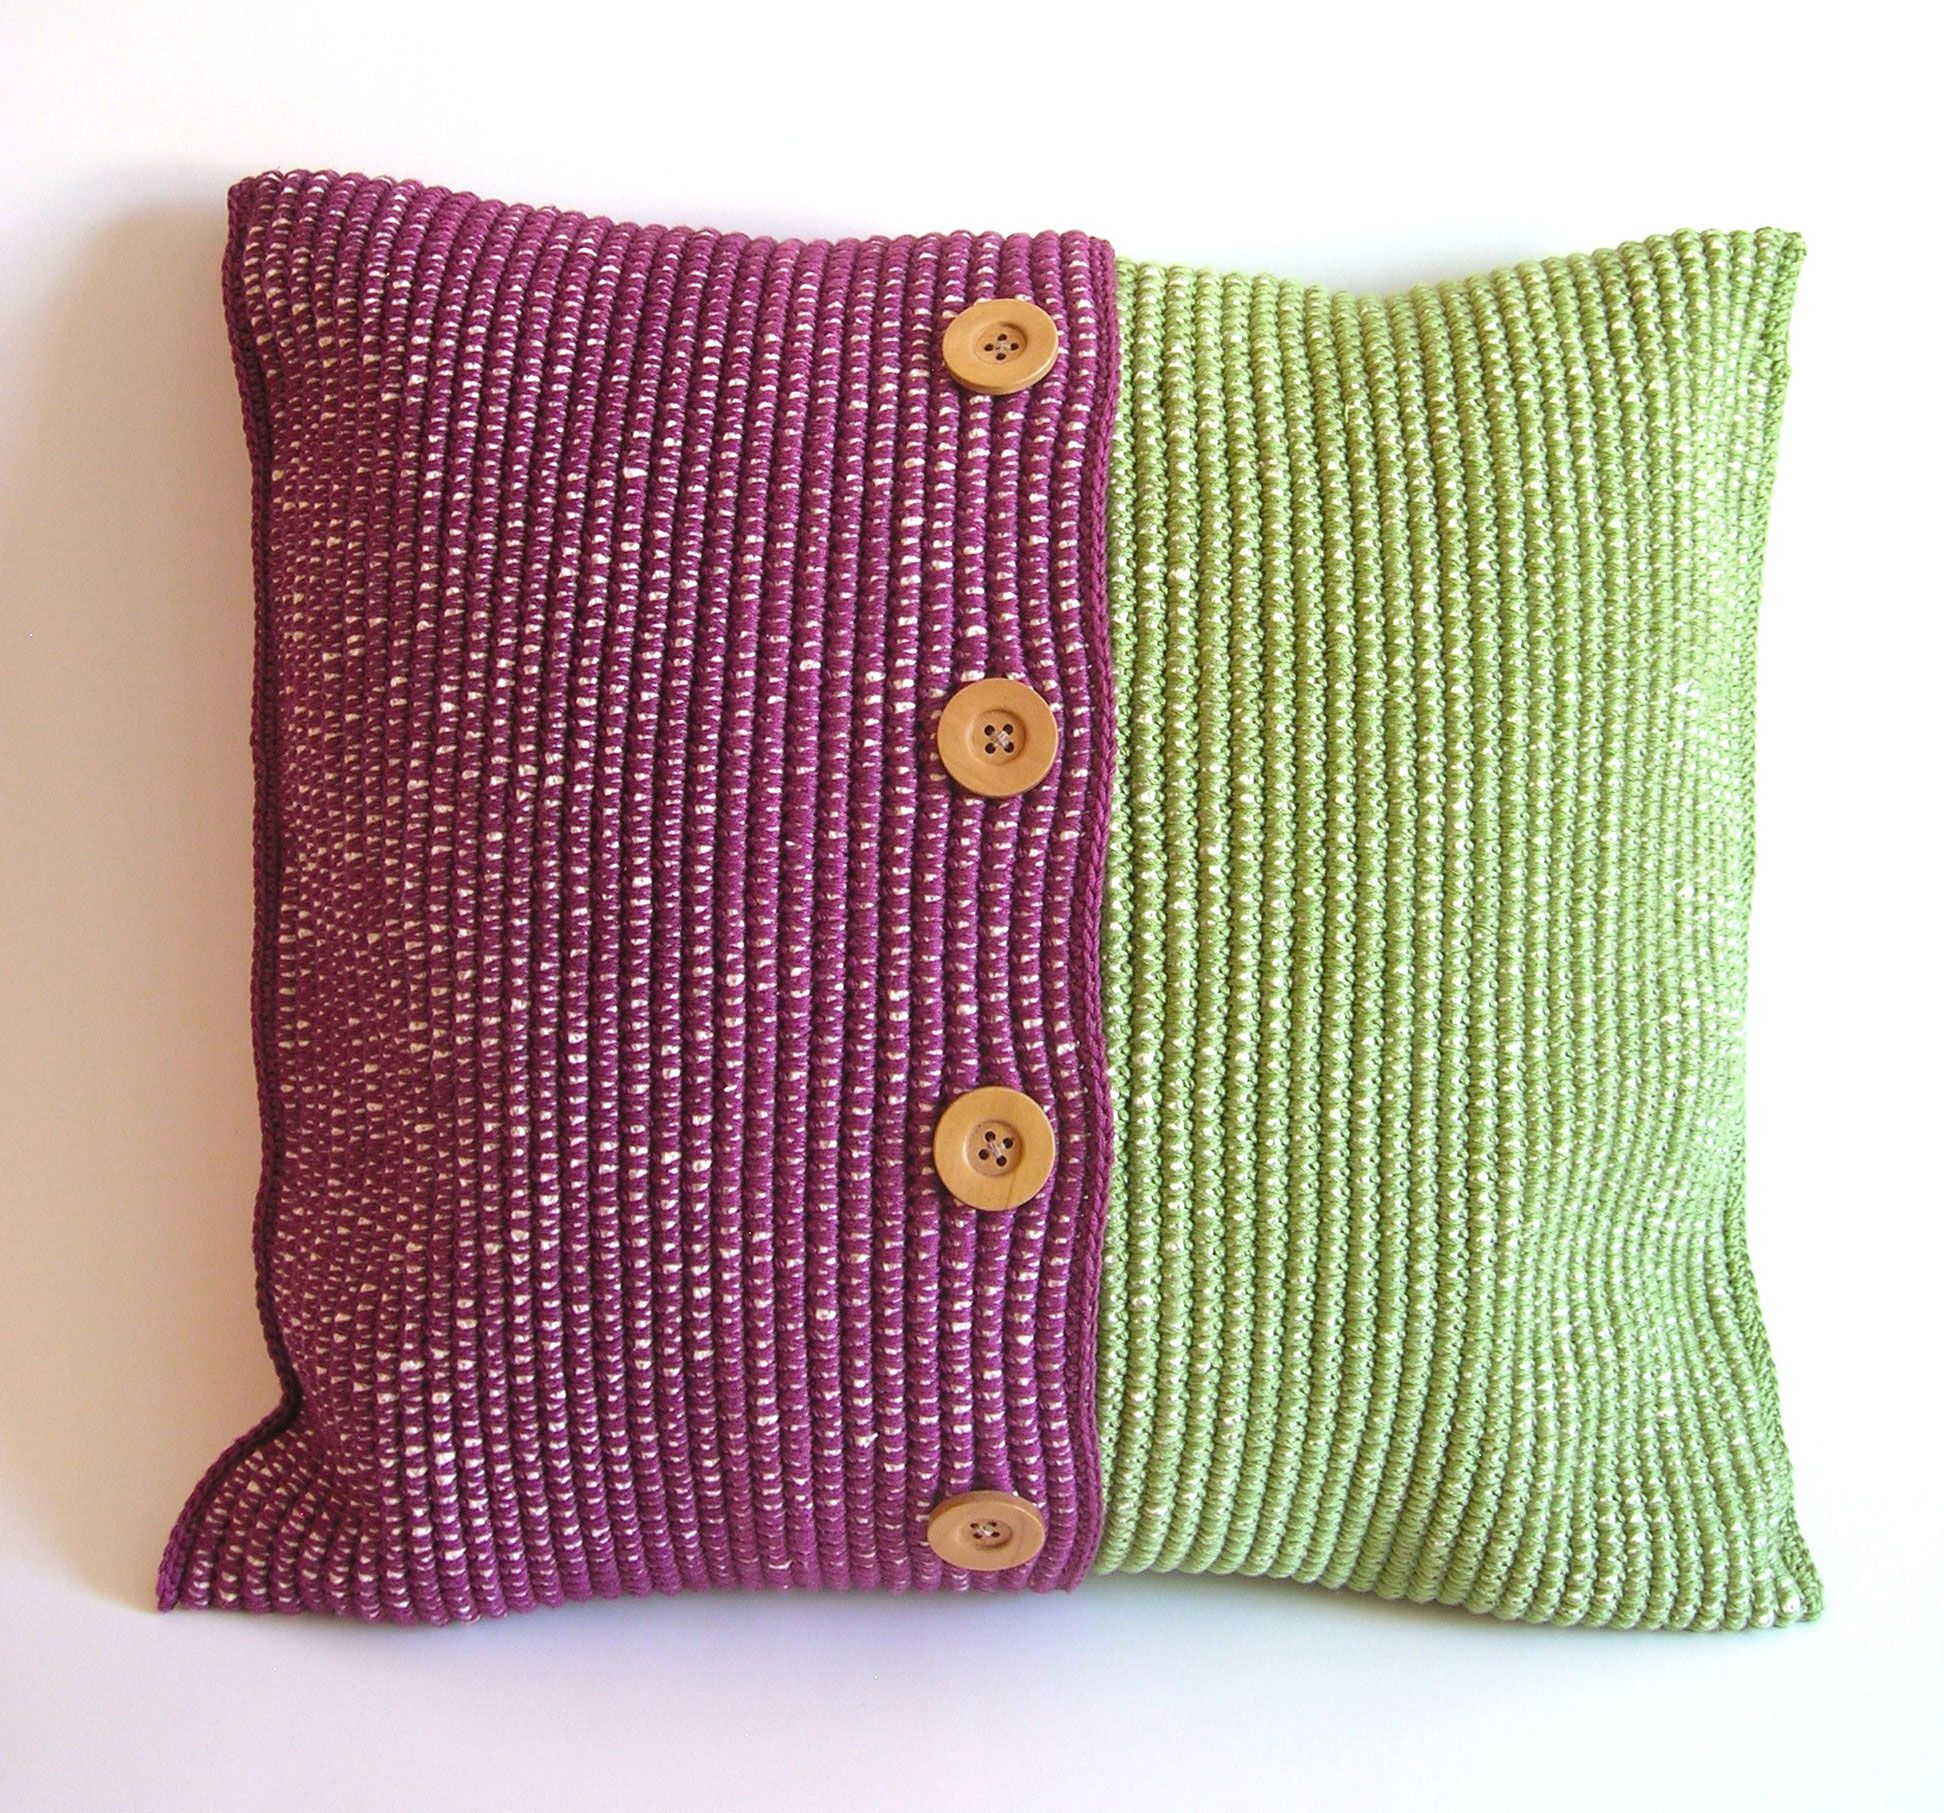 Crochet Cushion Cases, Free Pdf , Photo Tutorial, Written Instructions